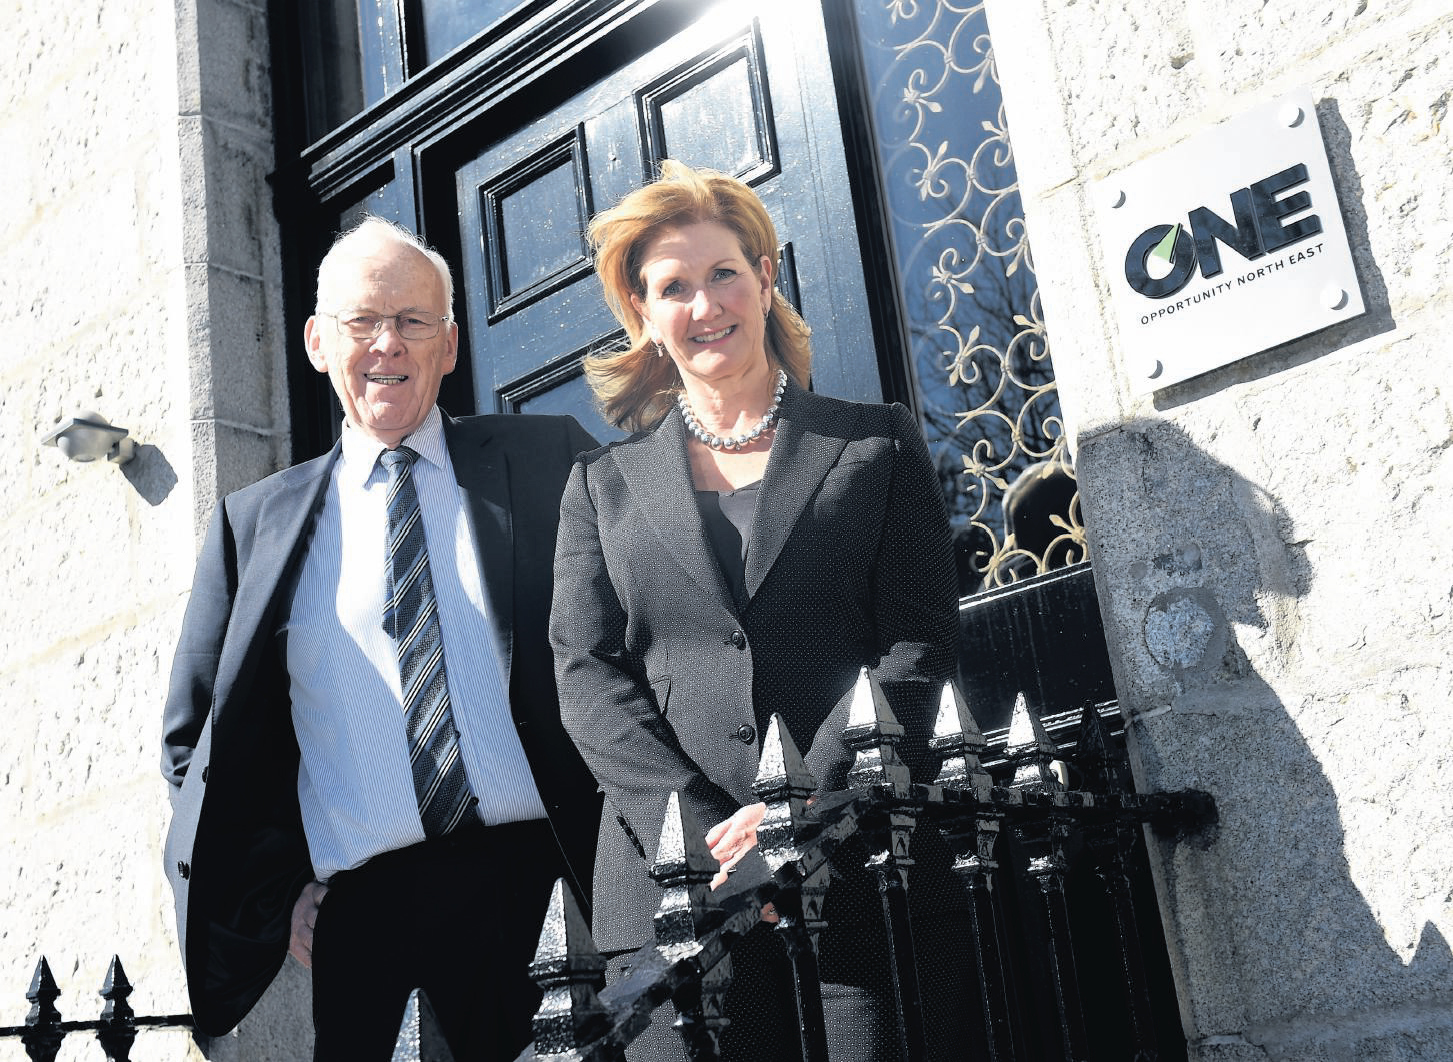 Sir Ian Wood and Jennifer Craw (Chief Executive of Opportunity North East / ONE) at Opportunity North East, Queens Gardens, Aberdeen.